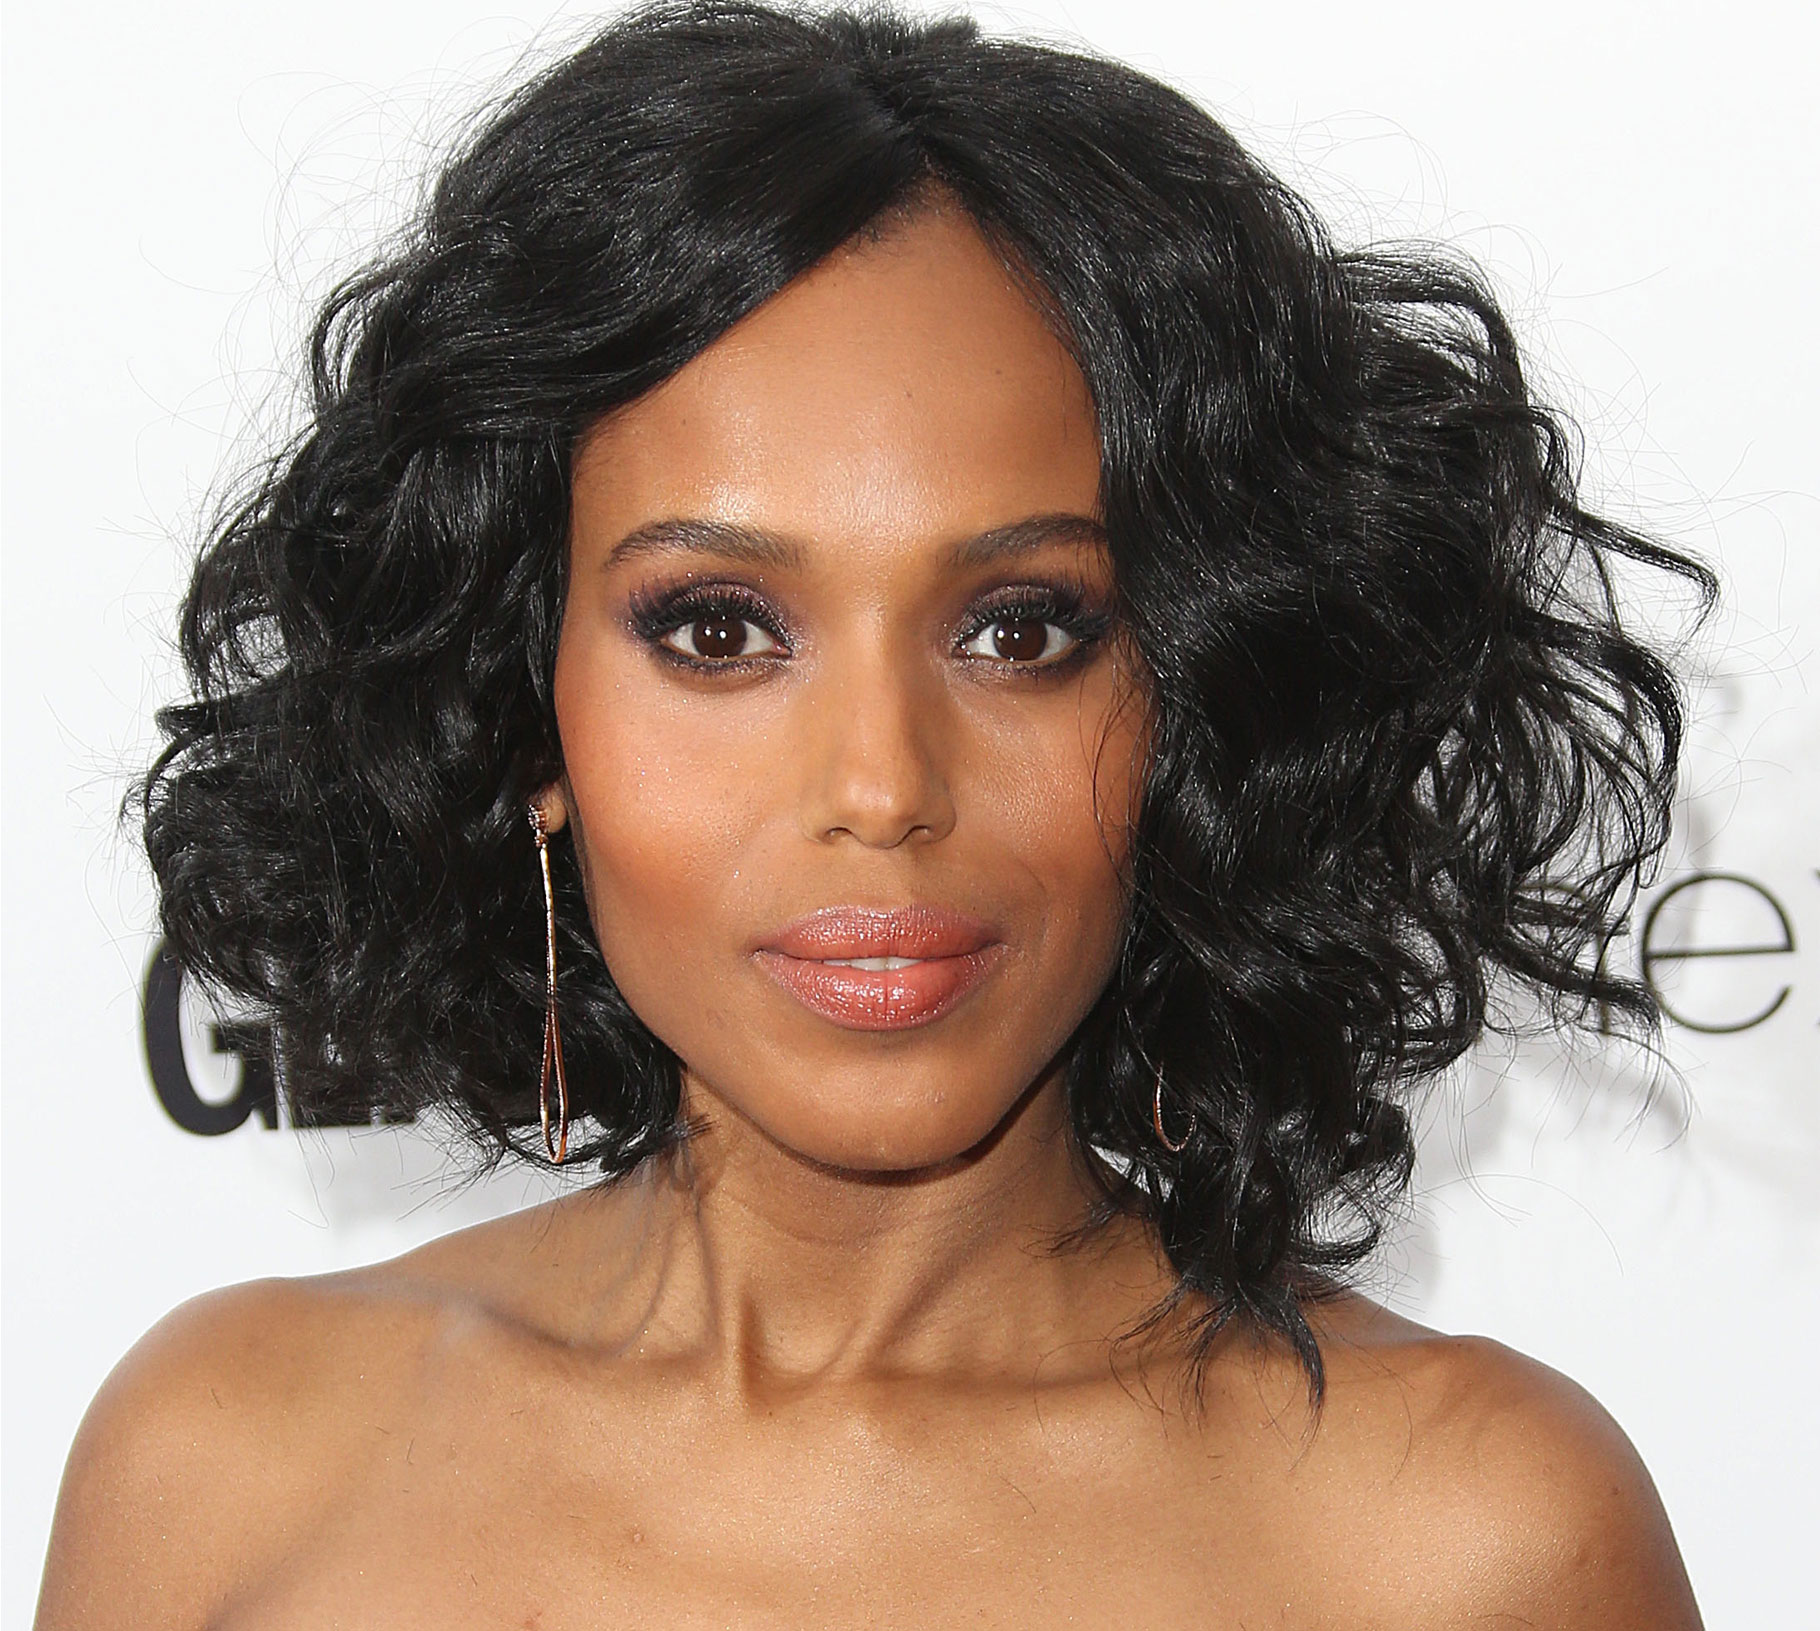 Kerry Washington with a diamond-shaped face